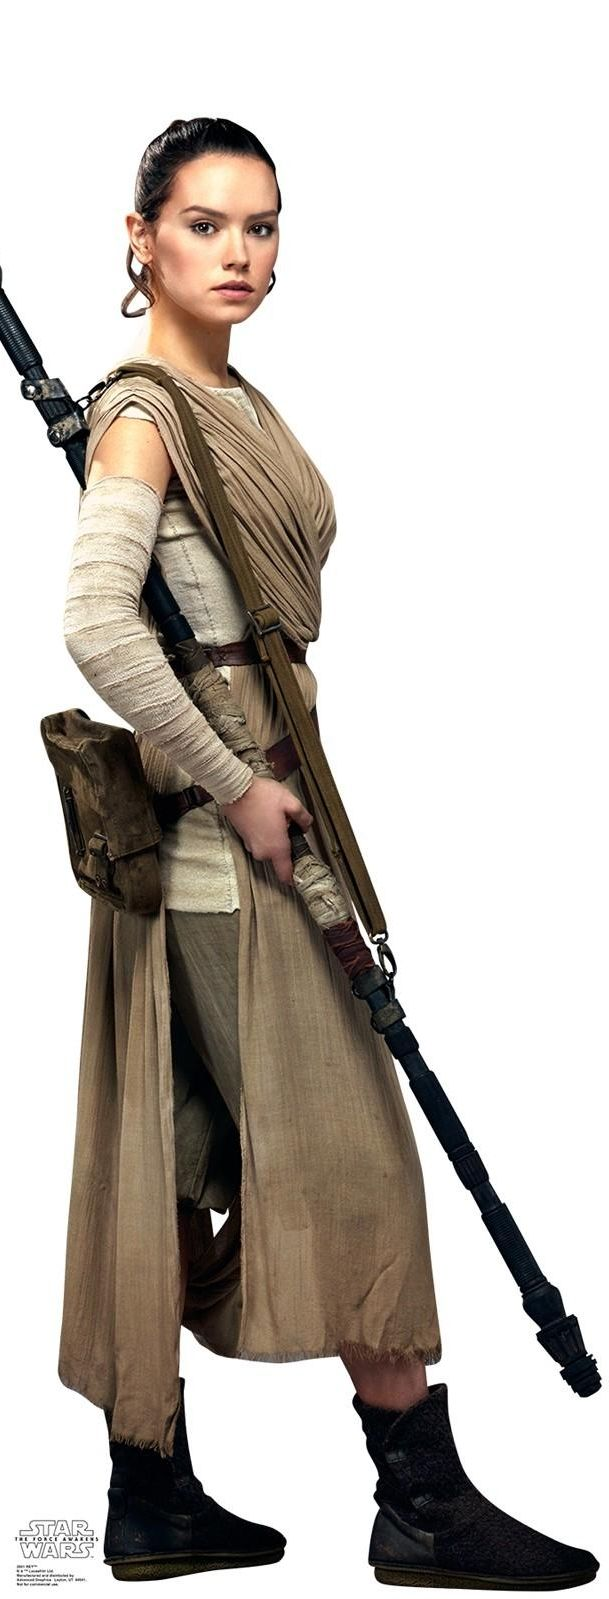 Daisy Ridley - Star Wars: Episode VII - The Force Awakens (2015) (609×1599)